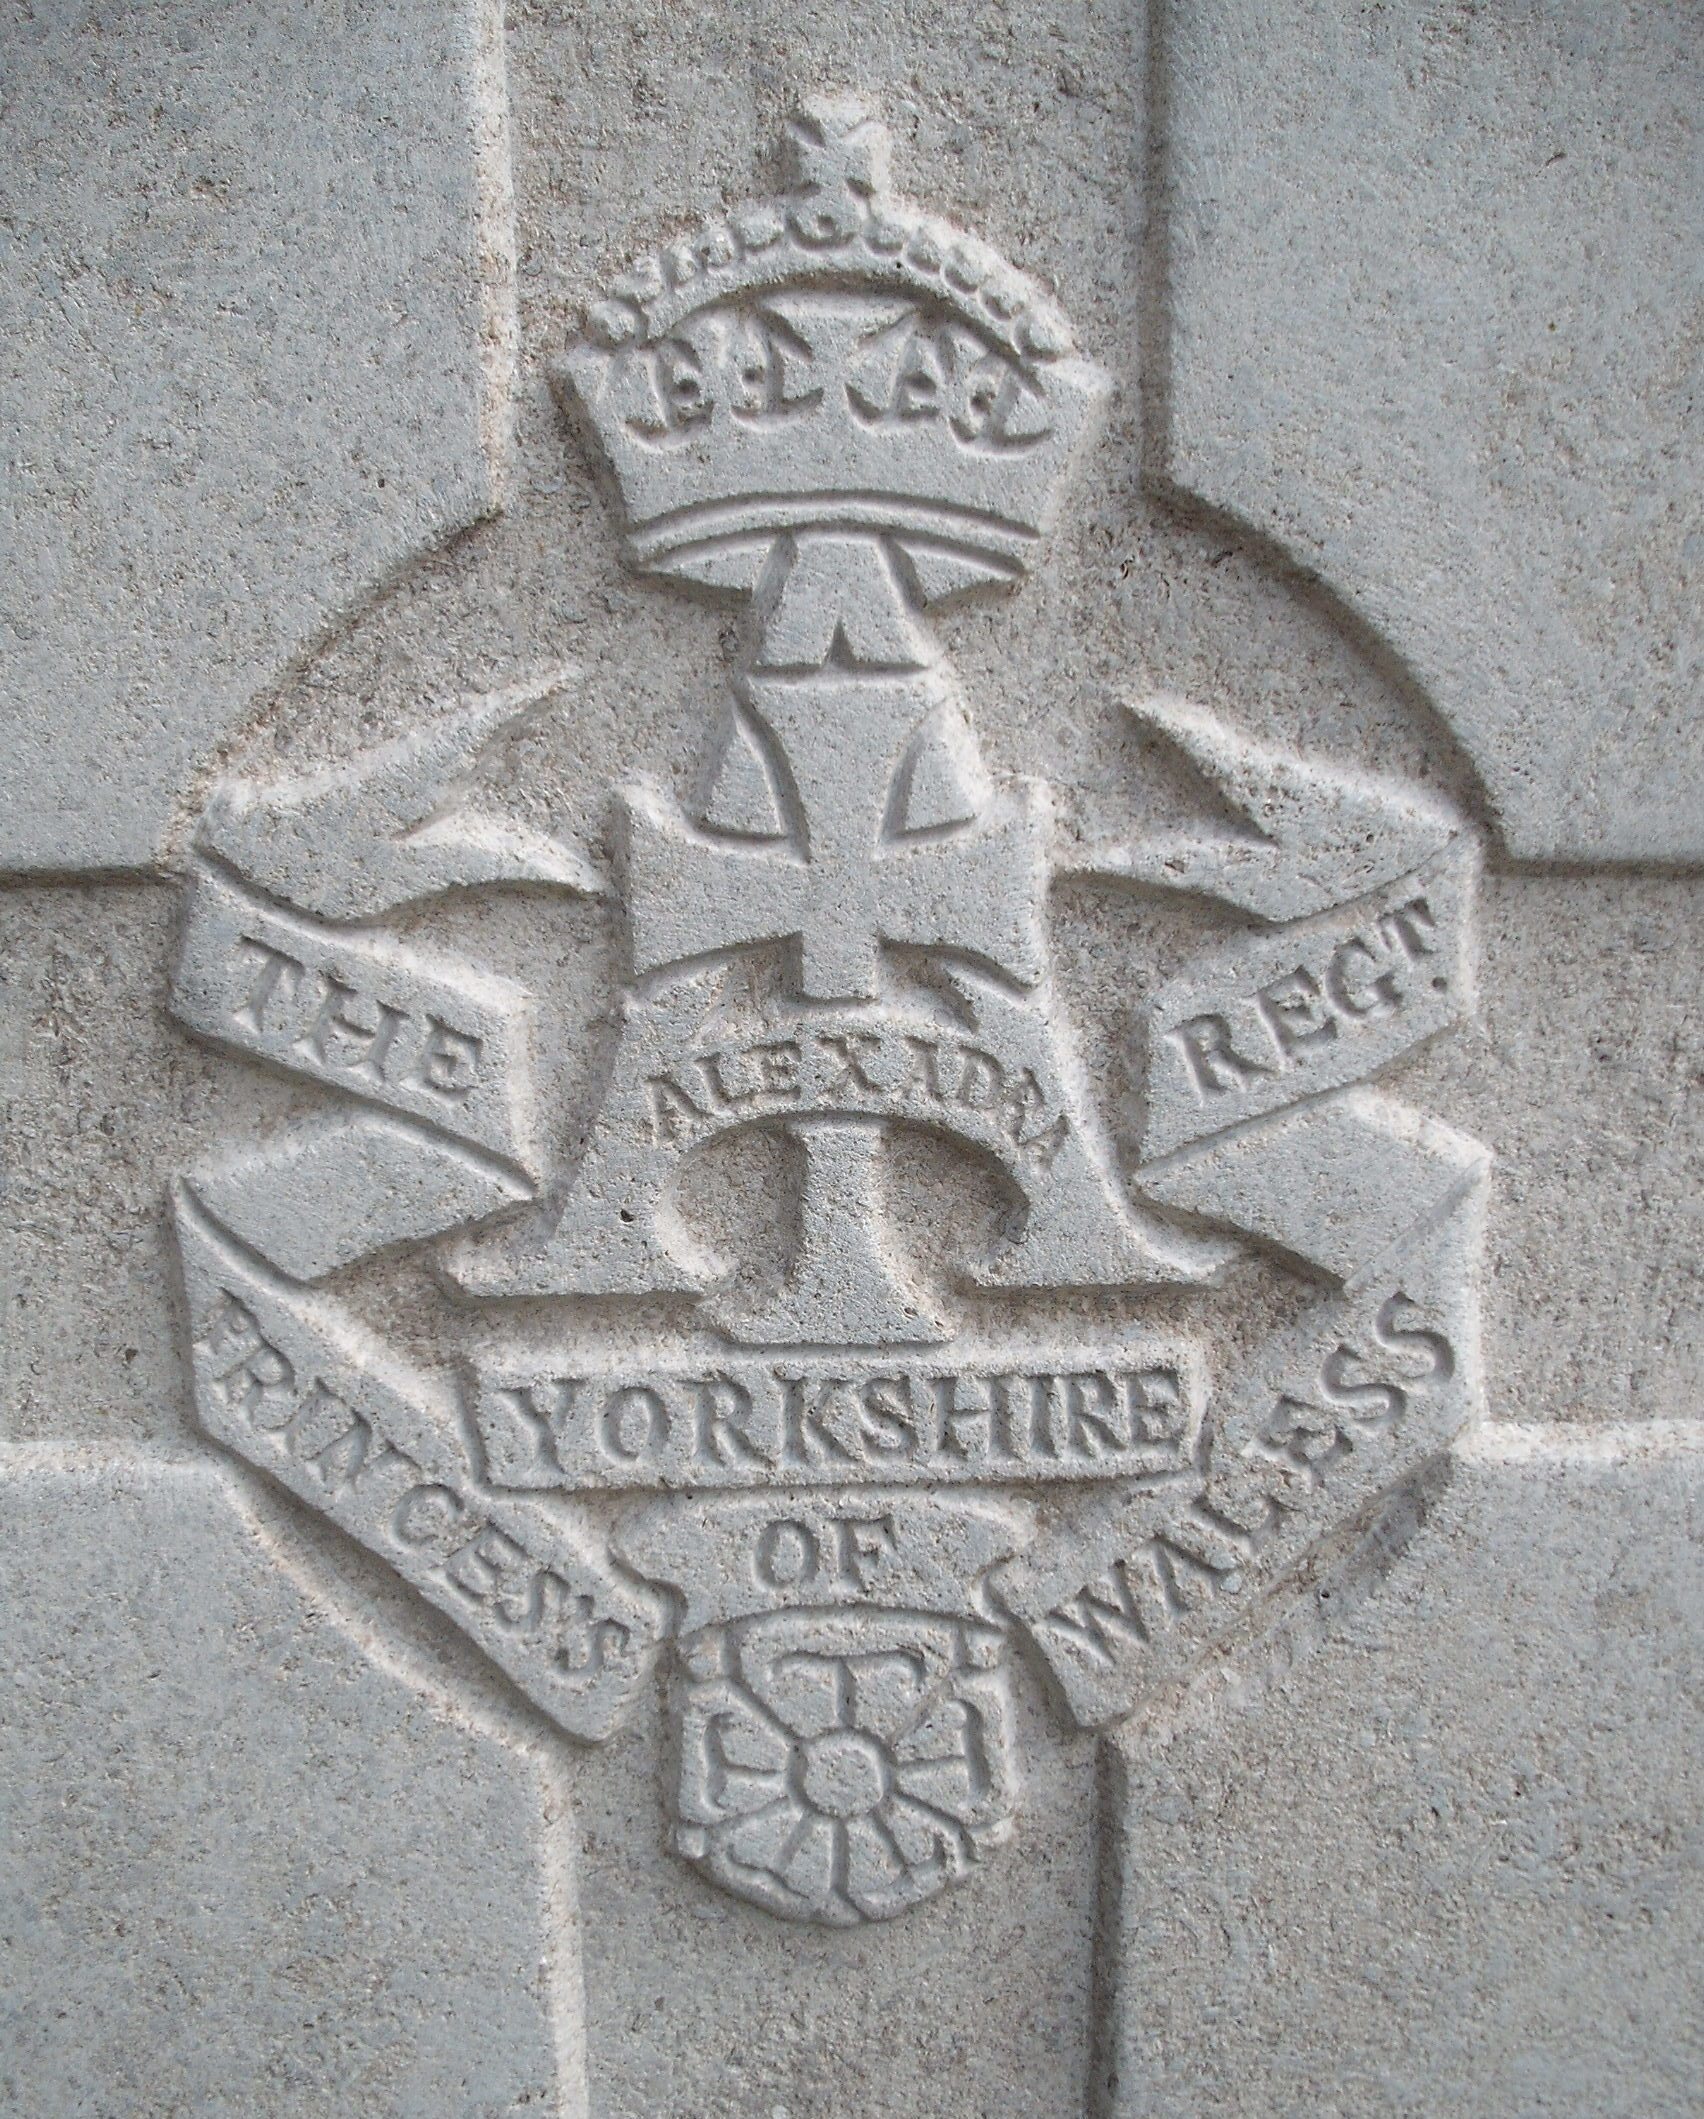 Capbadge of the Yorkshire Regiment